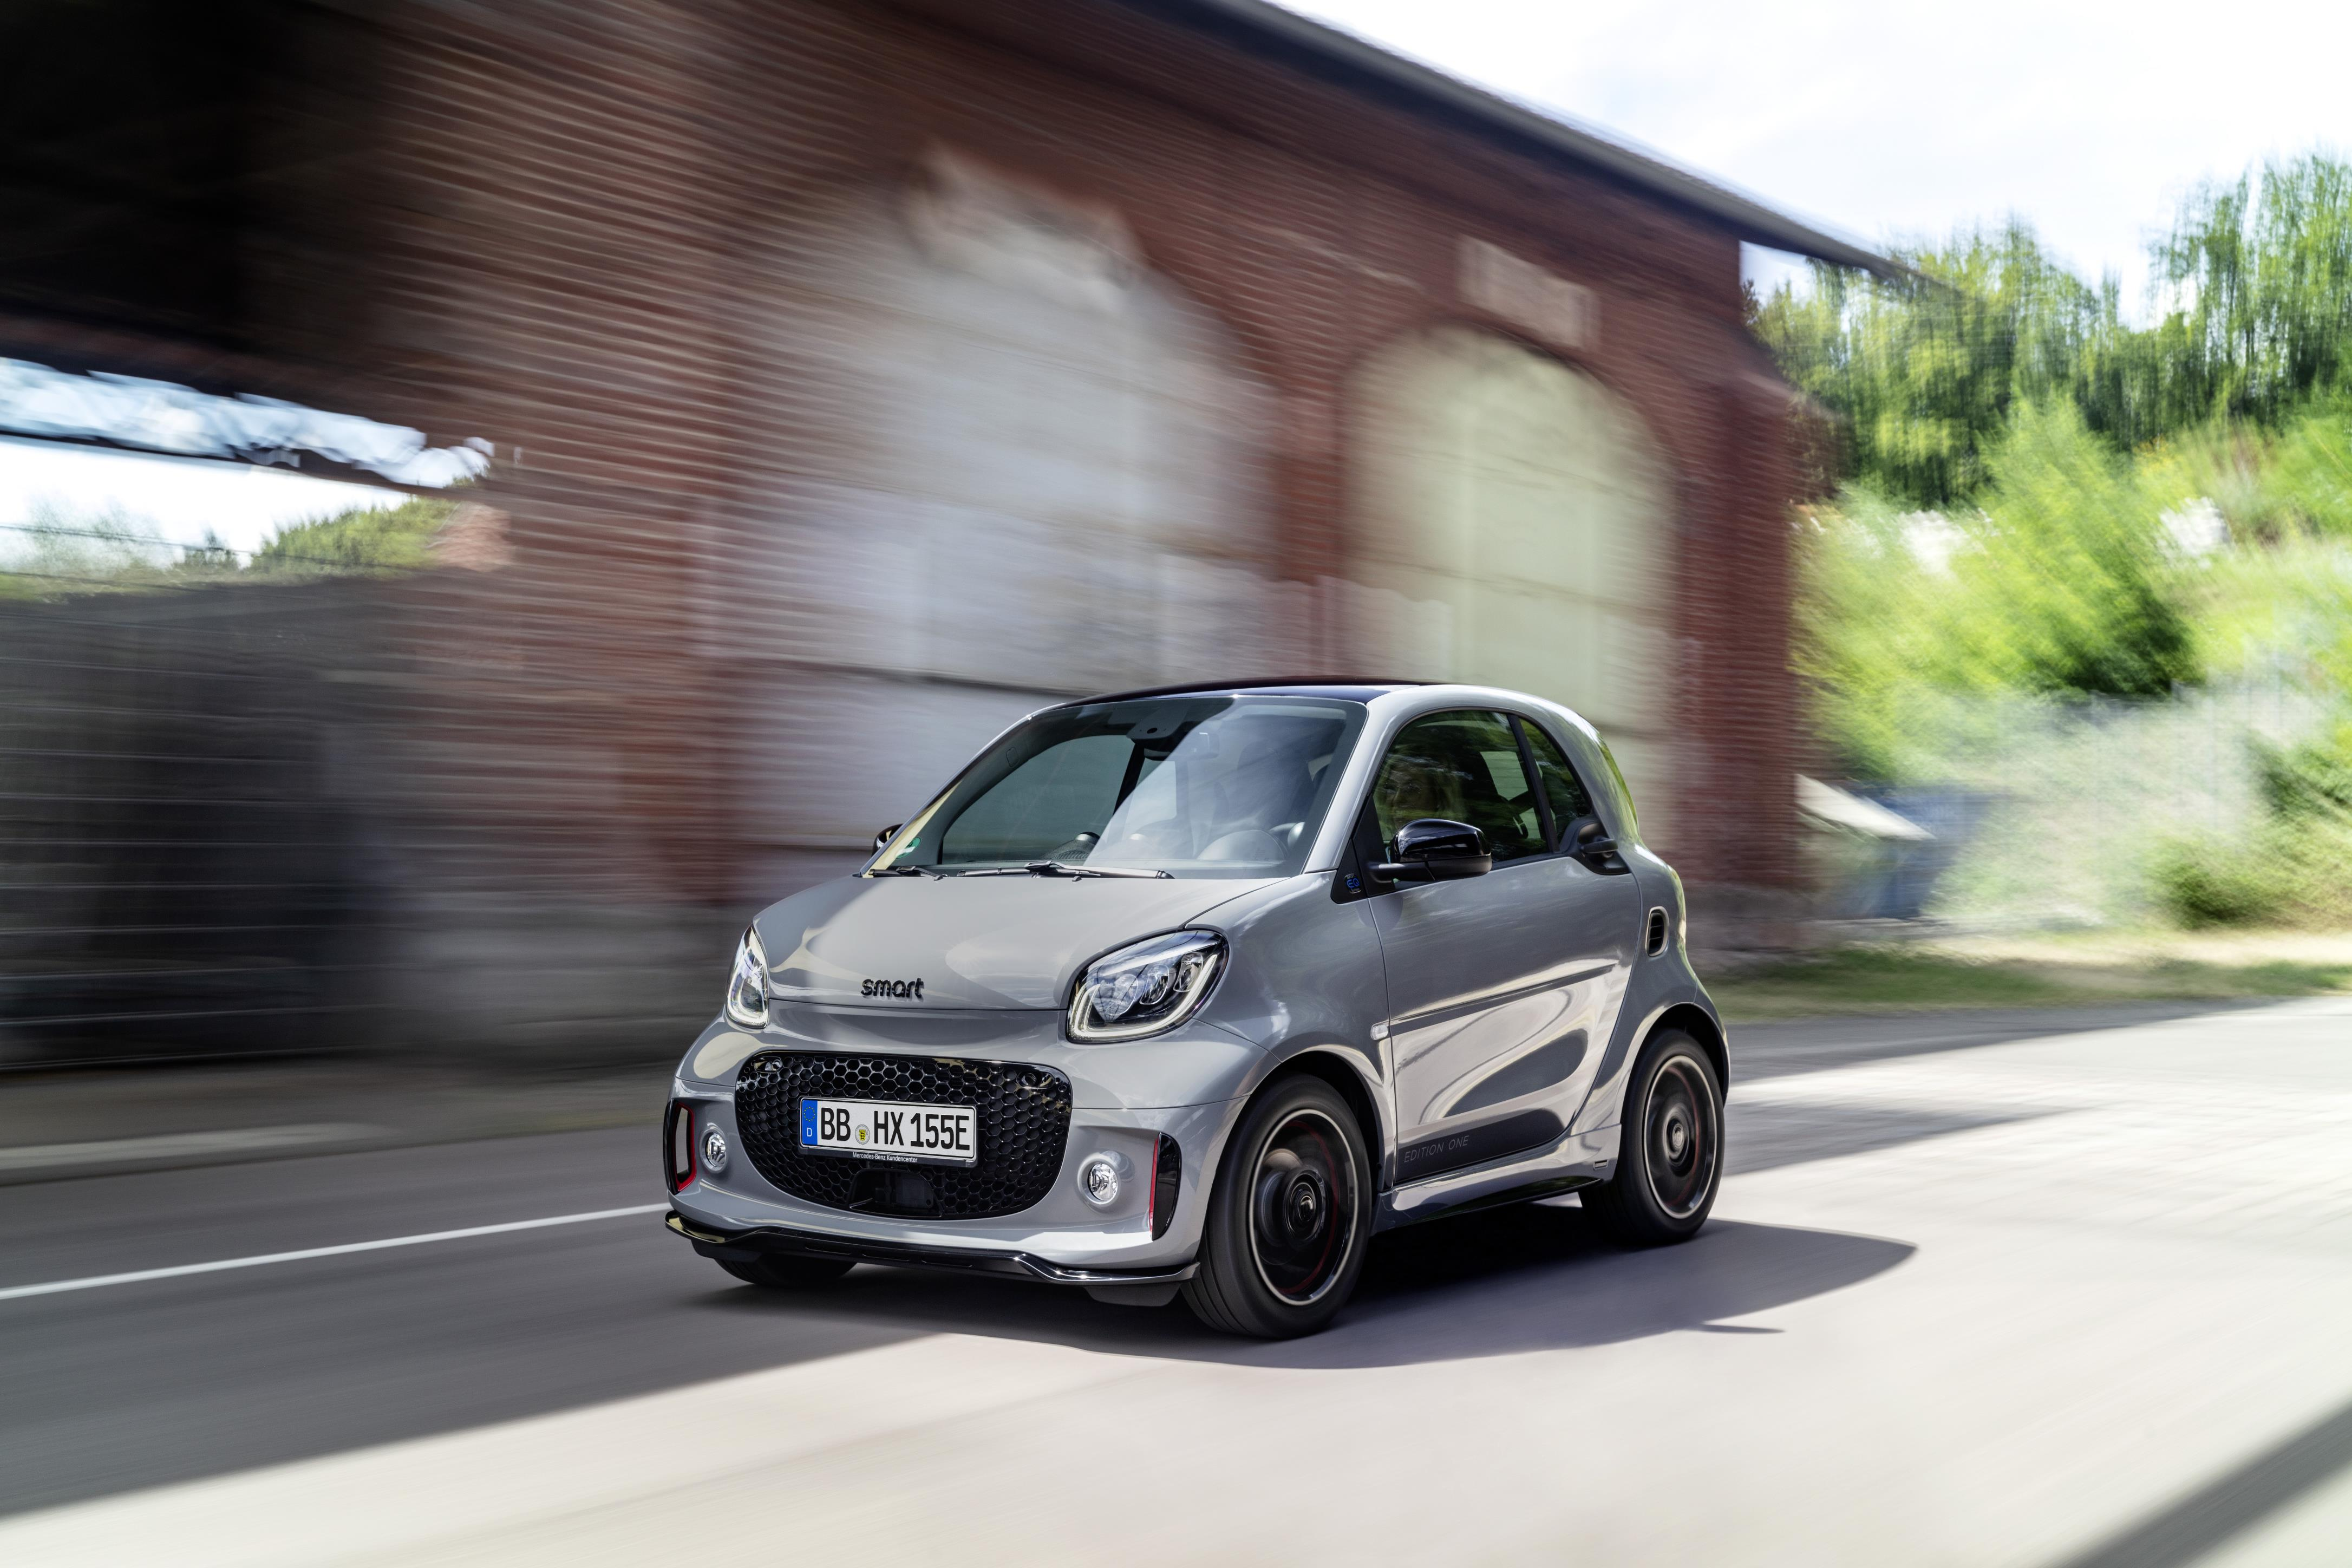 Smart exterior dynamic